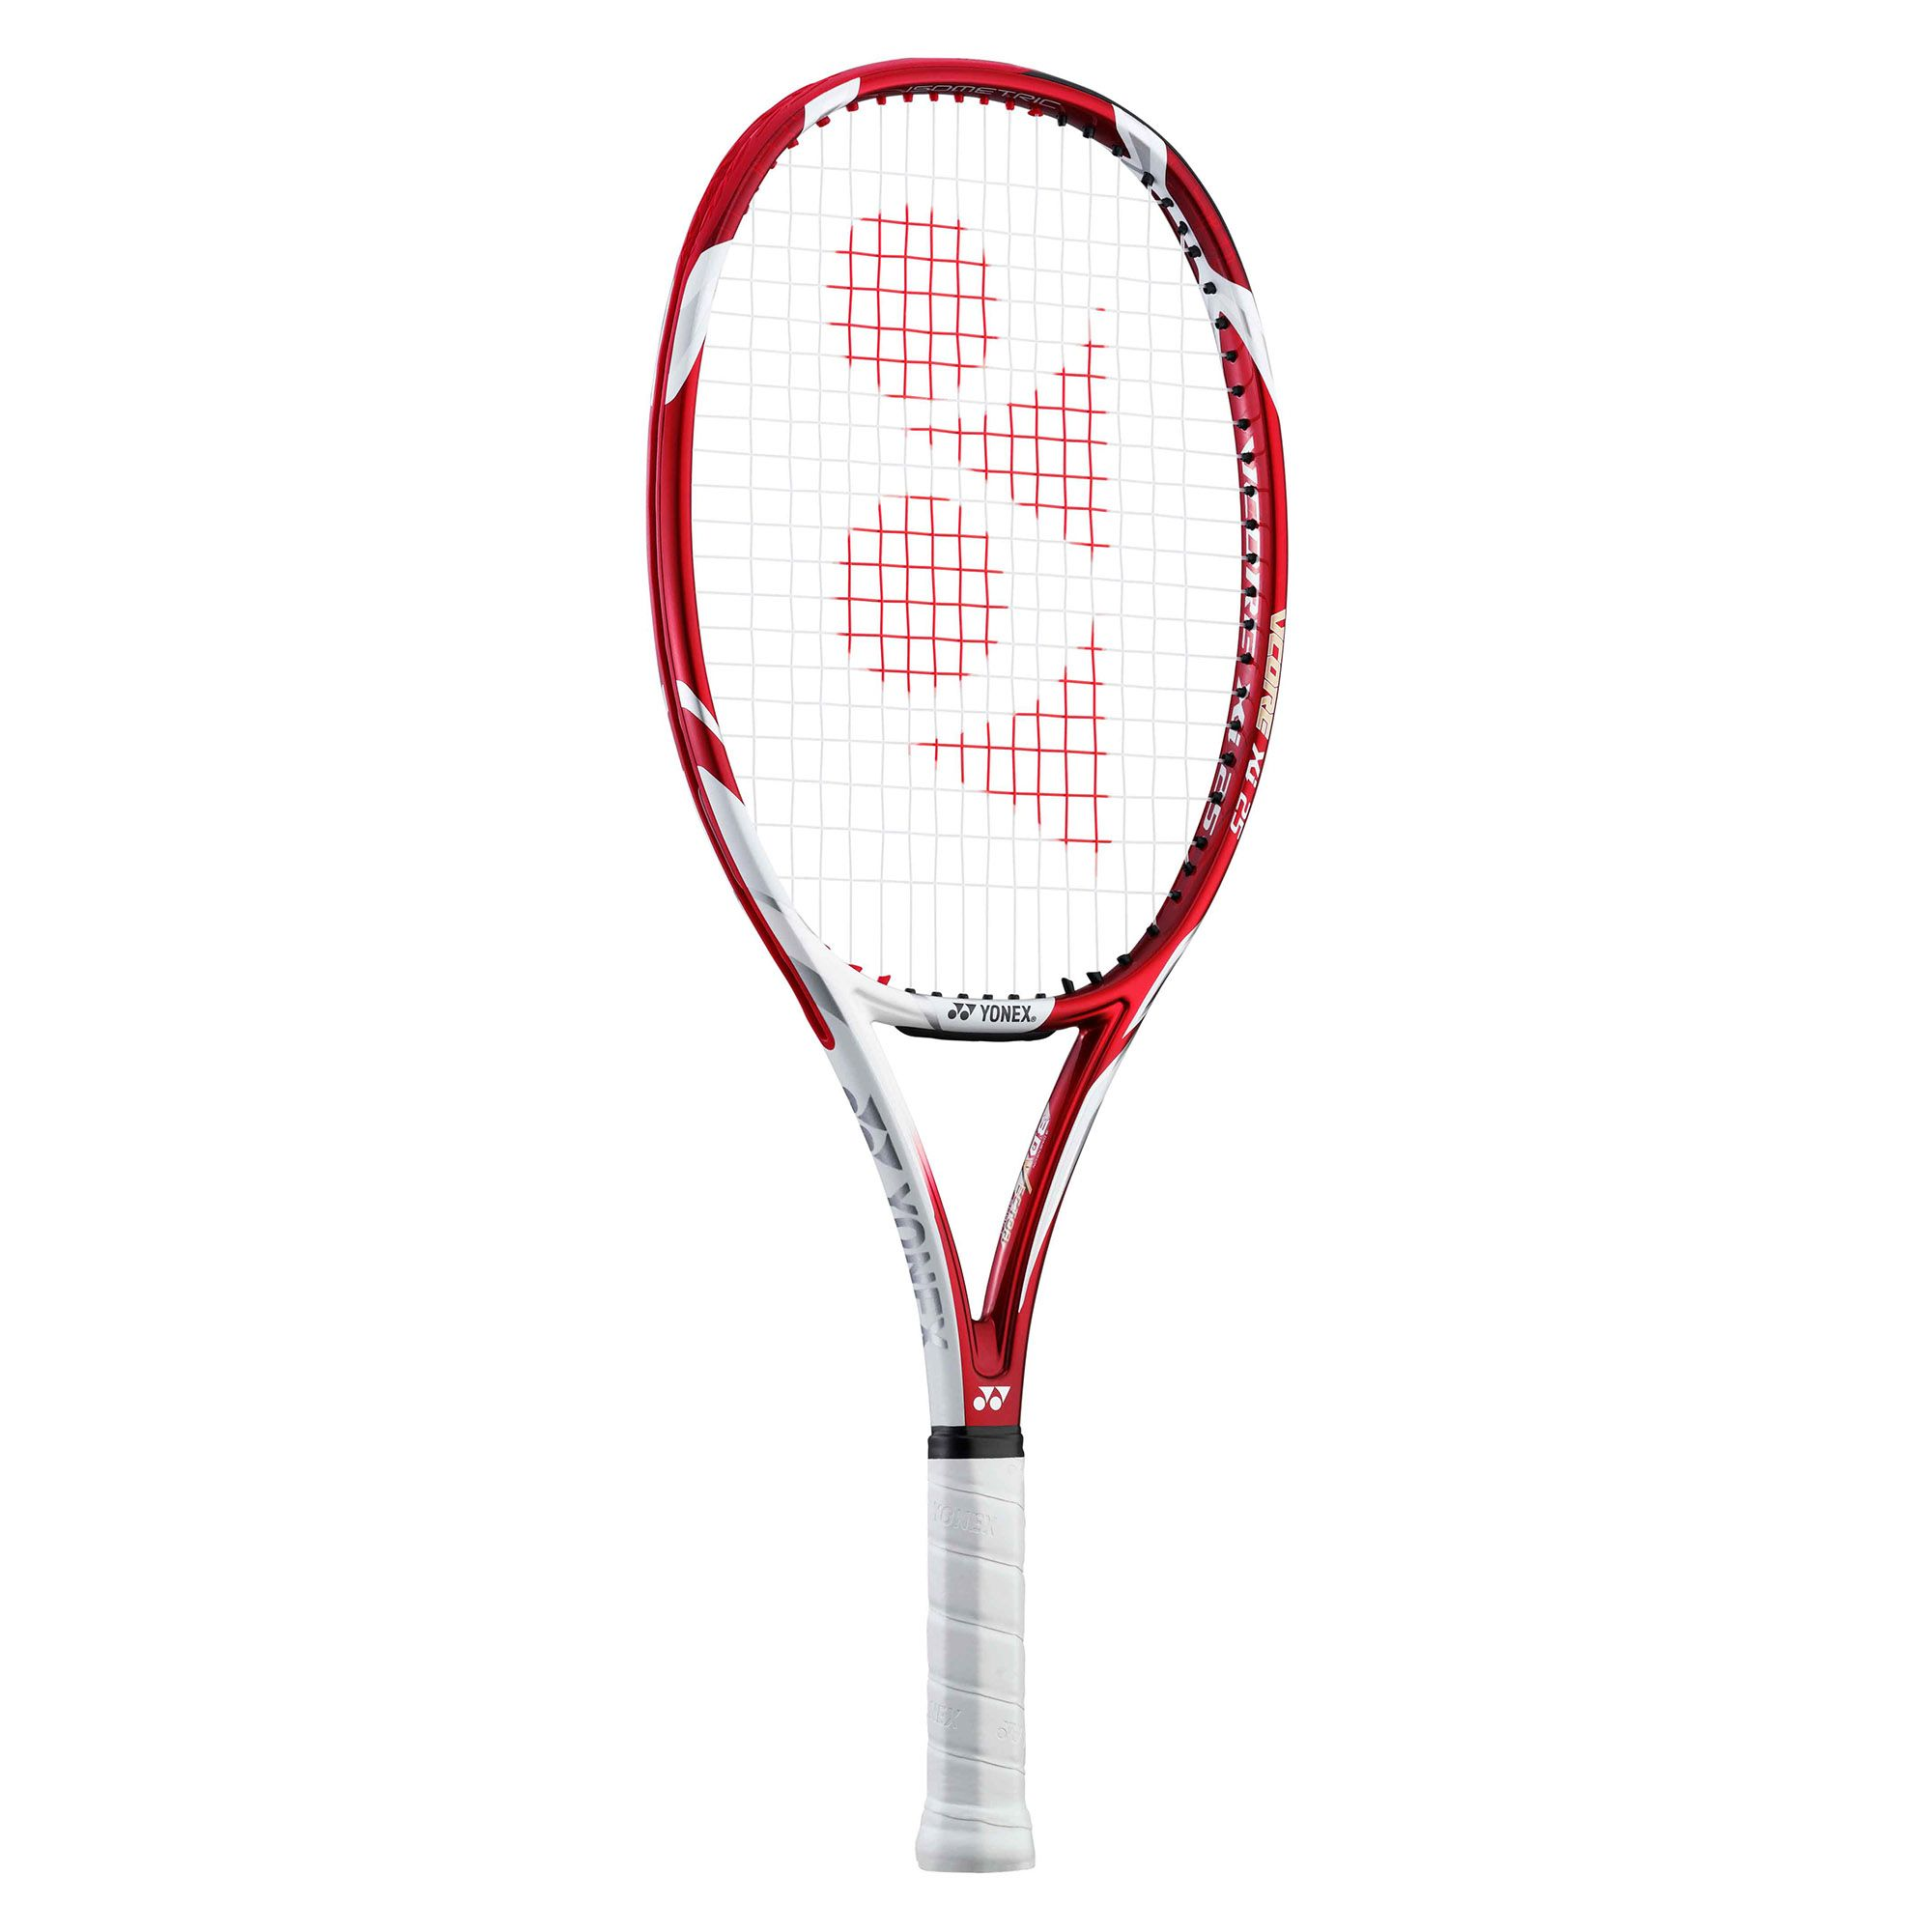 Racquet technology and the evolution of tennis